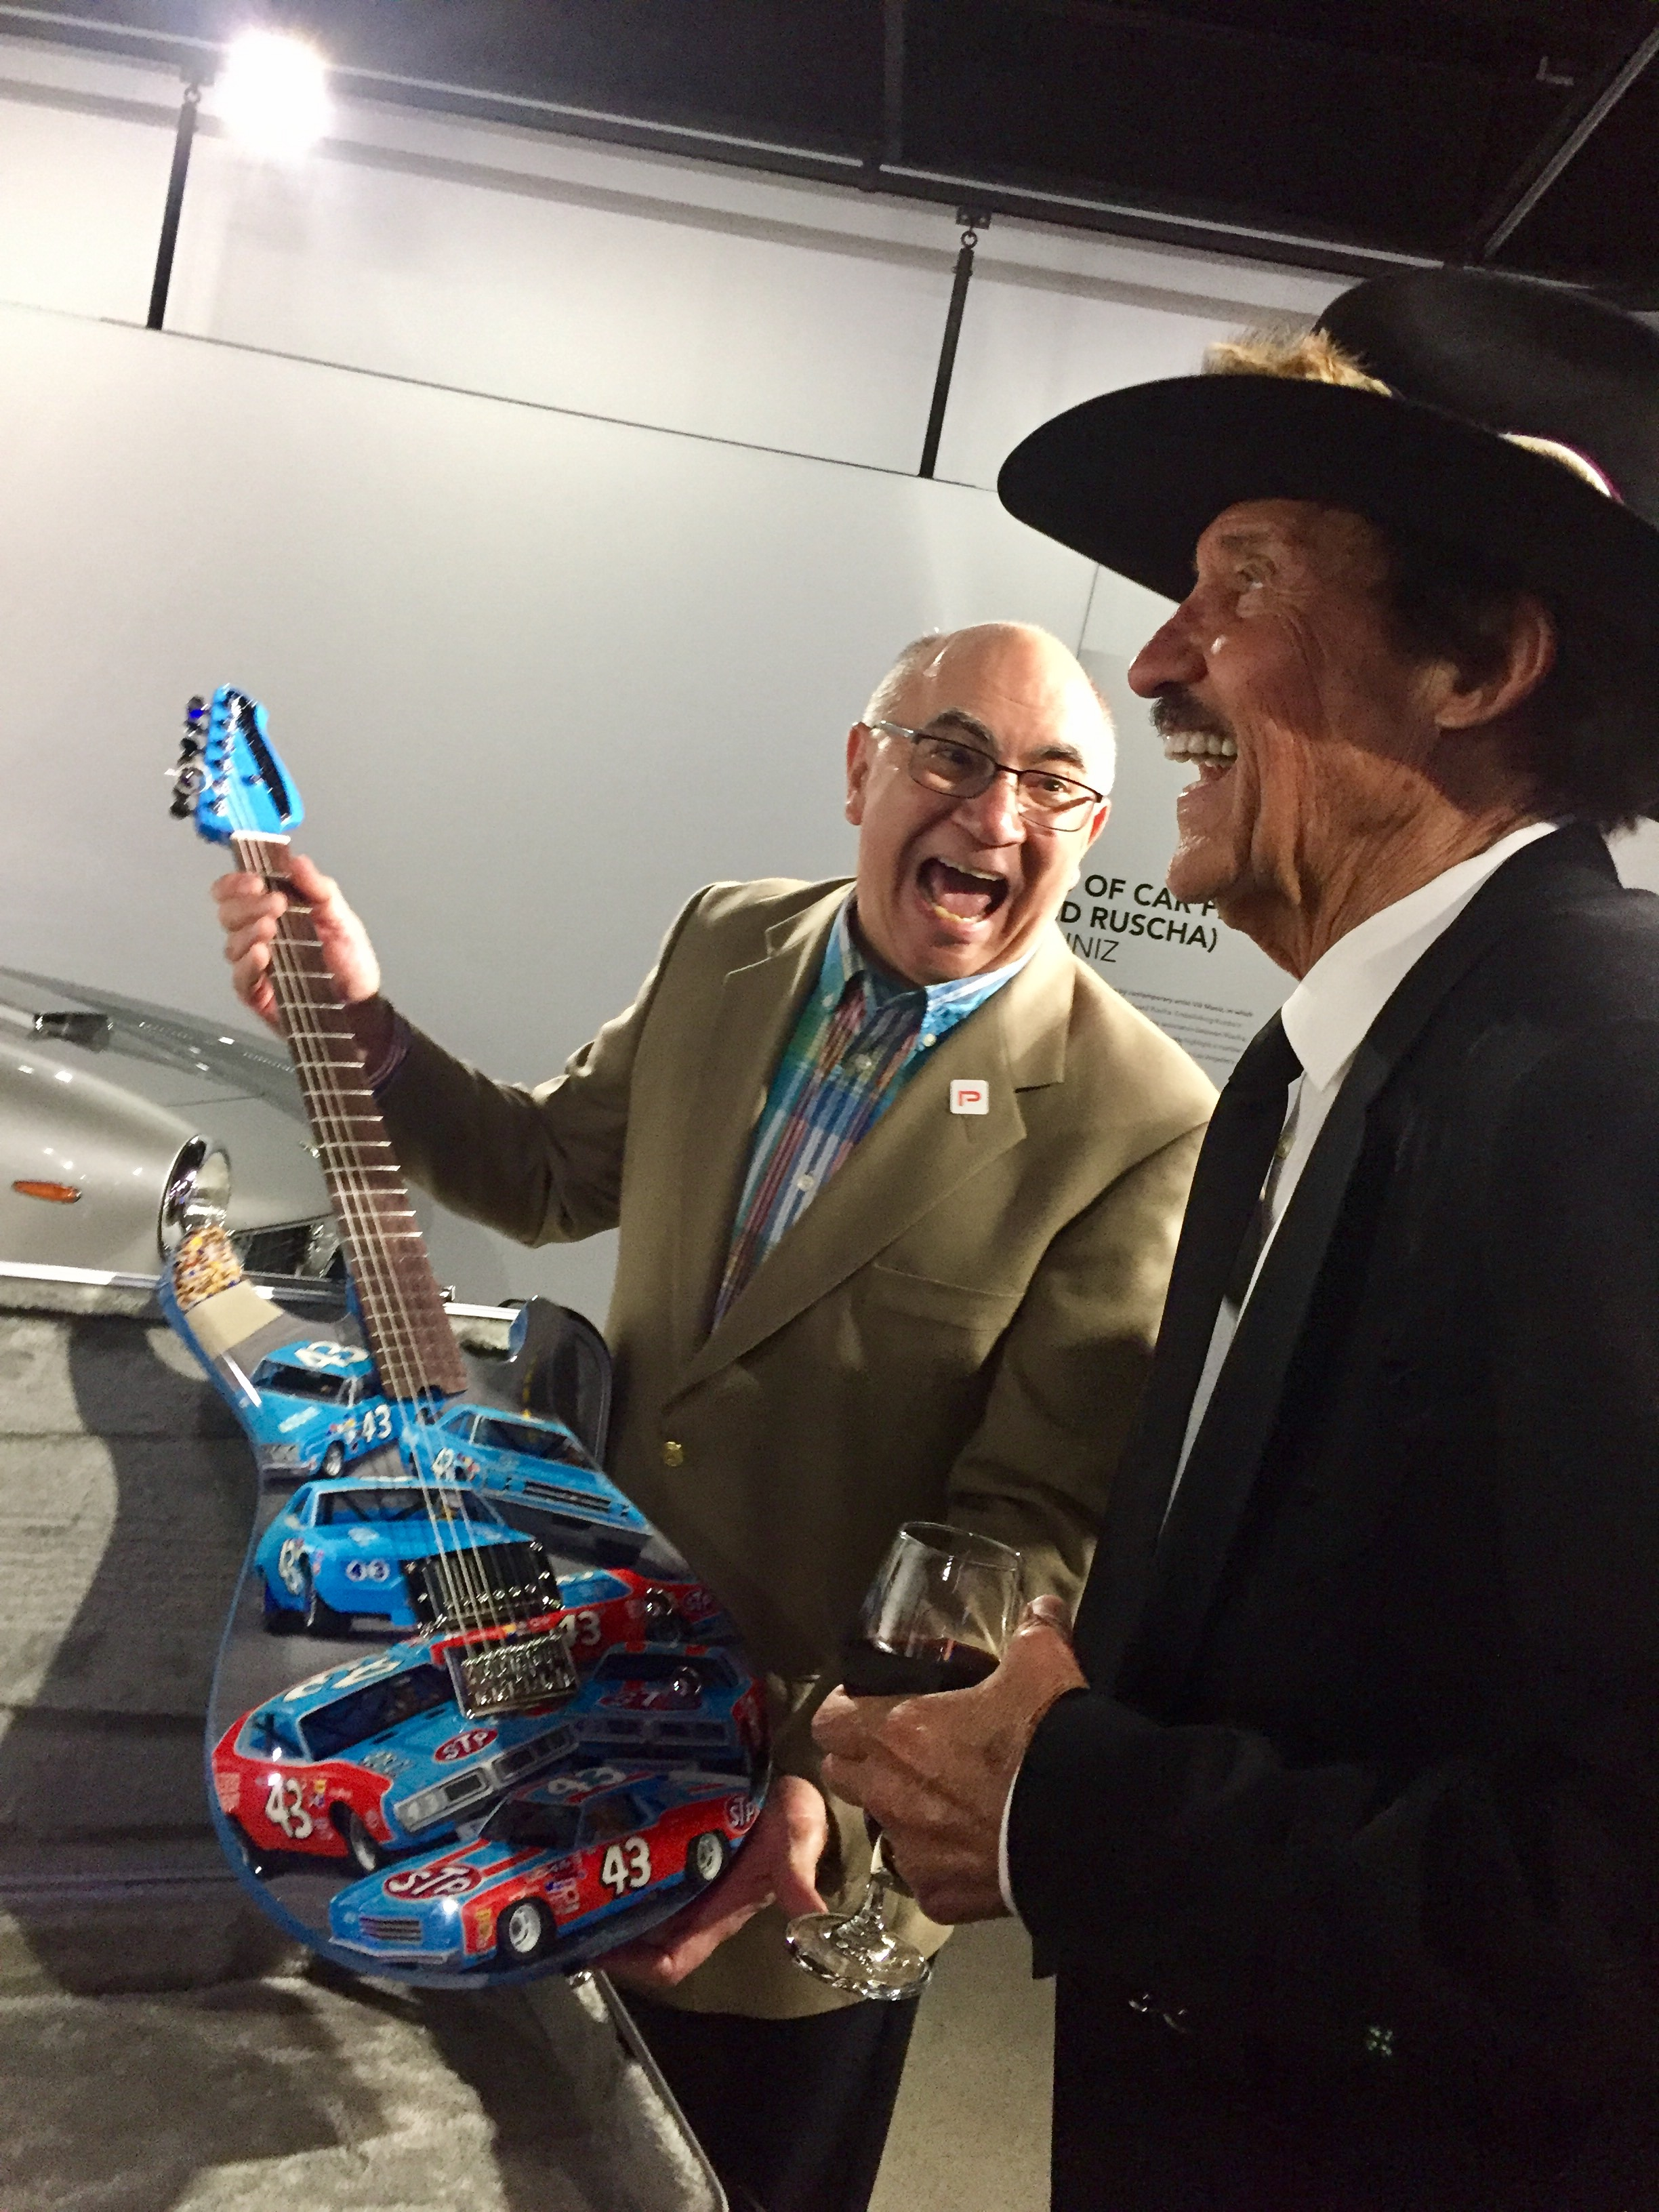 Dave with Richard Petty